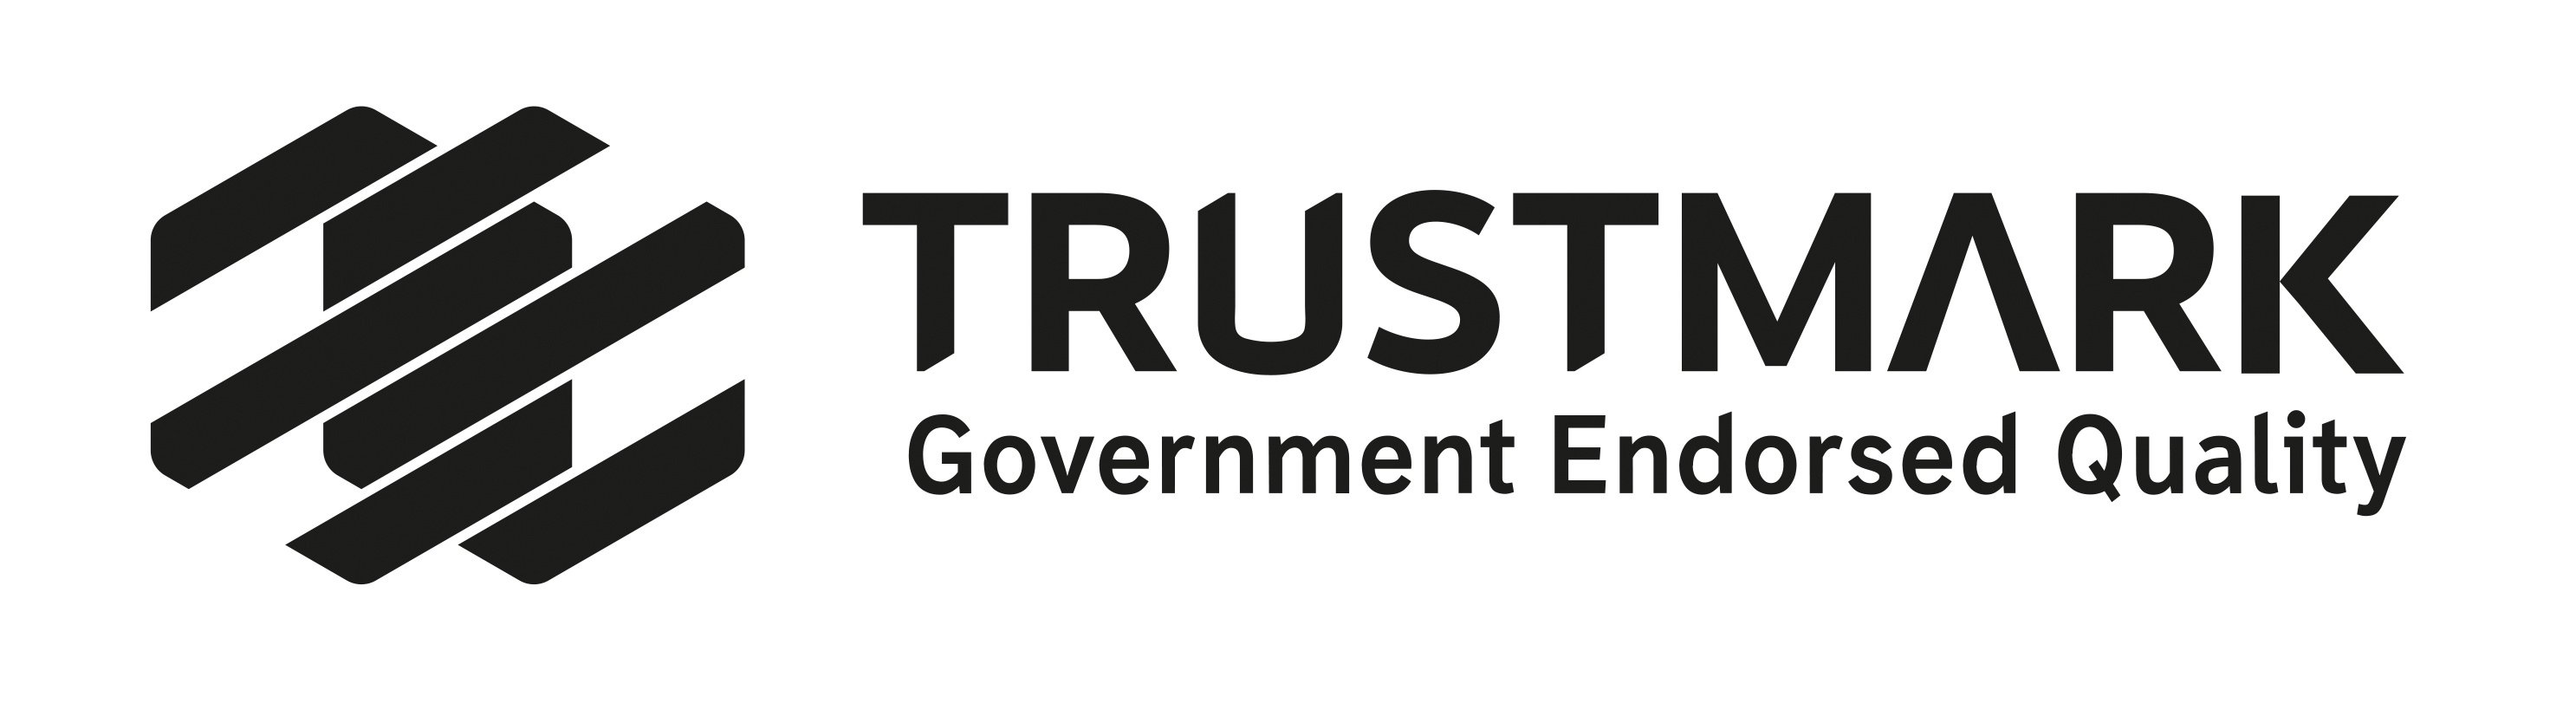 We are approved by the government's Trustmark scheme.